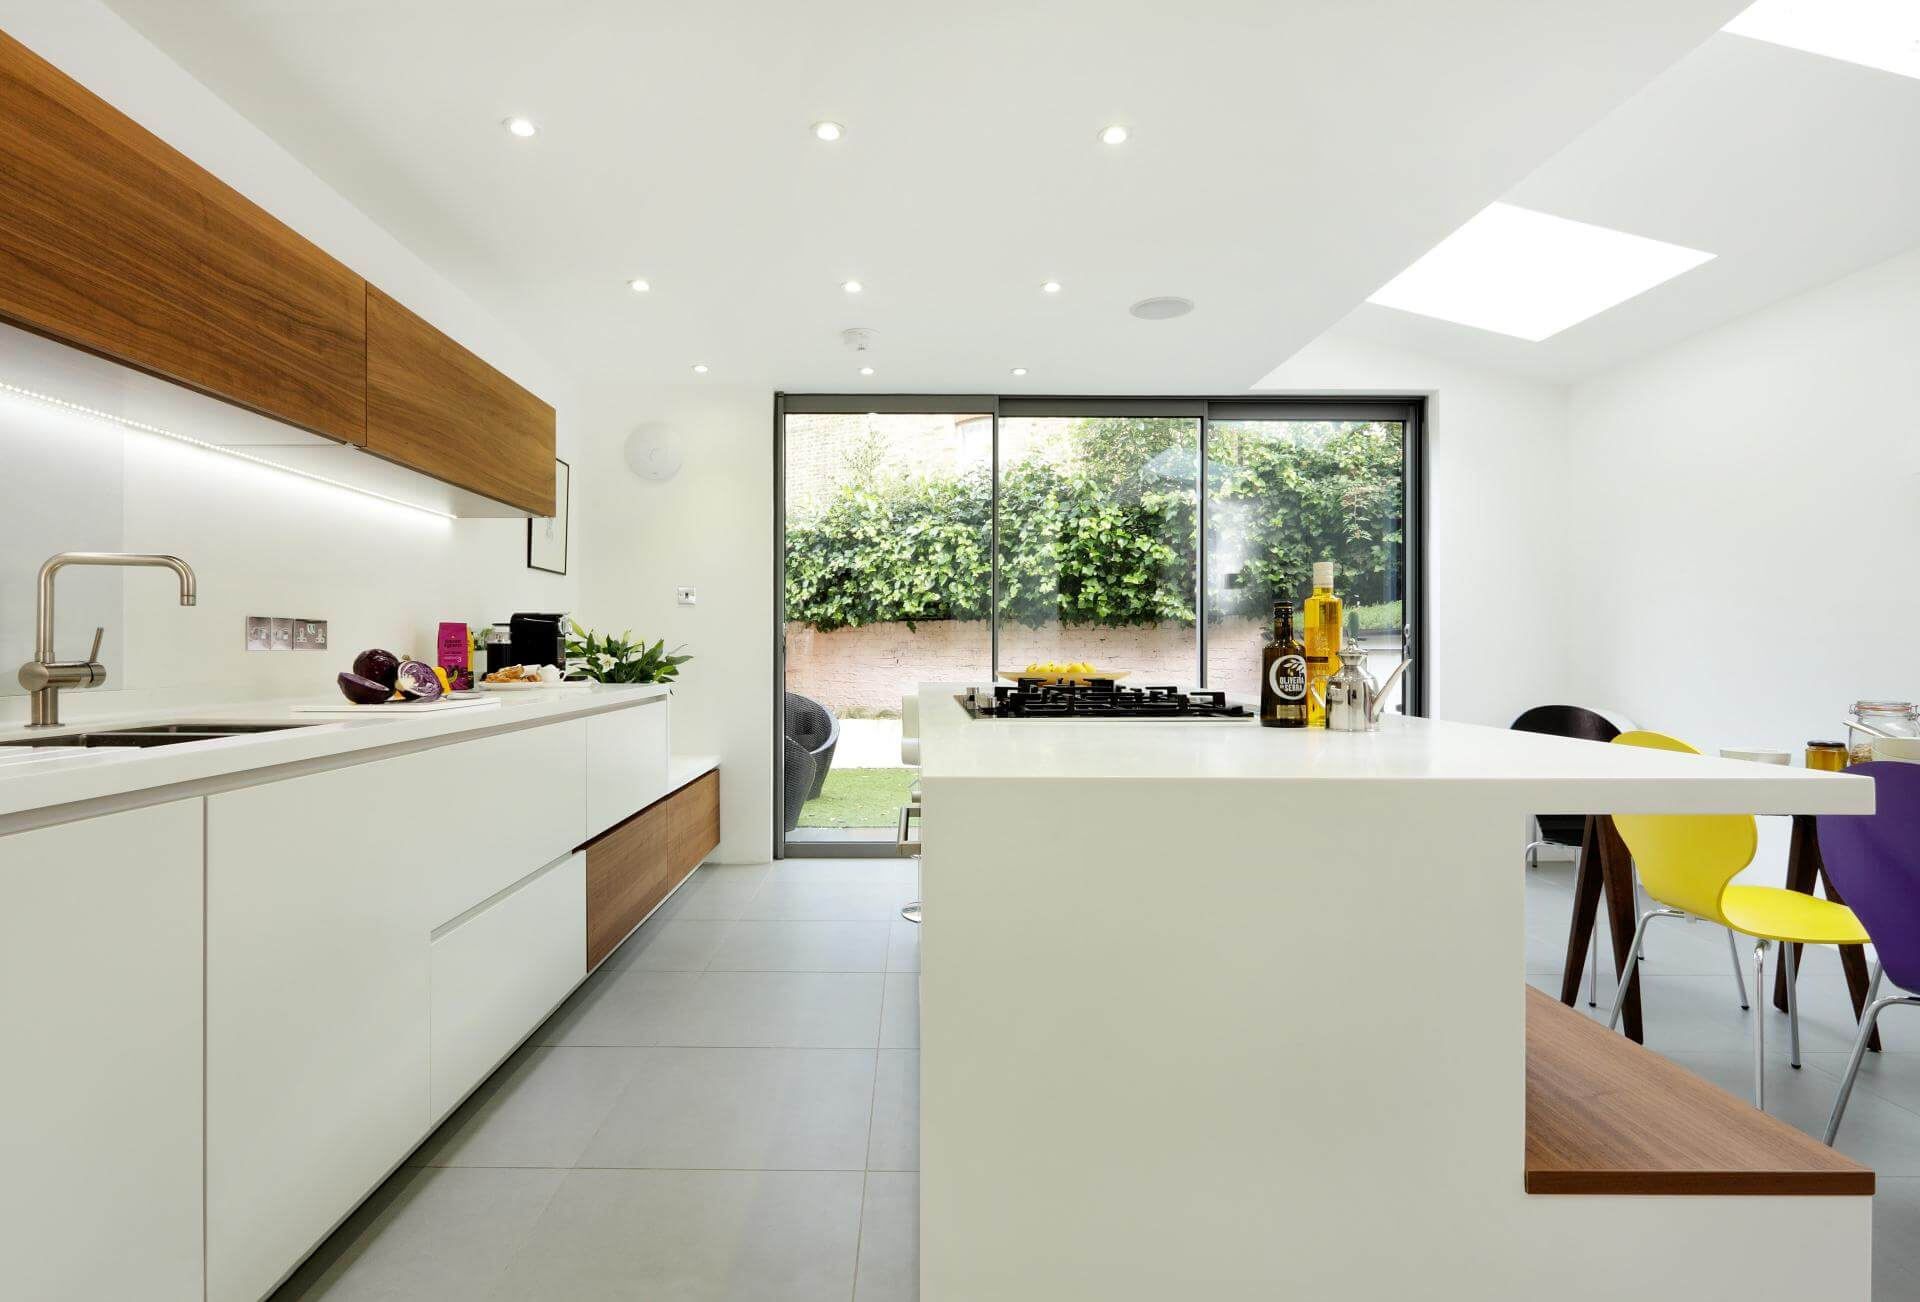 The Kitchen-Diner, How to Get It right!